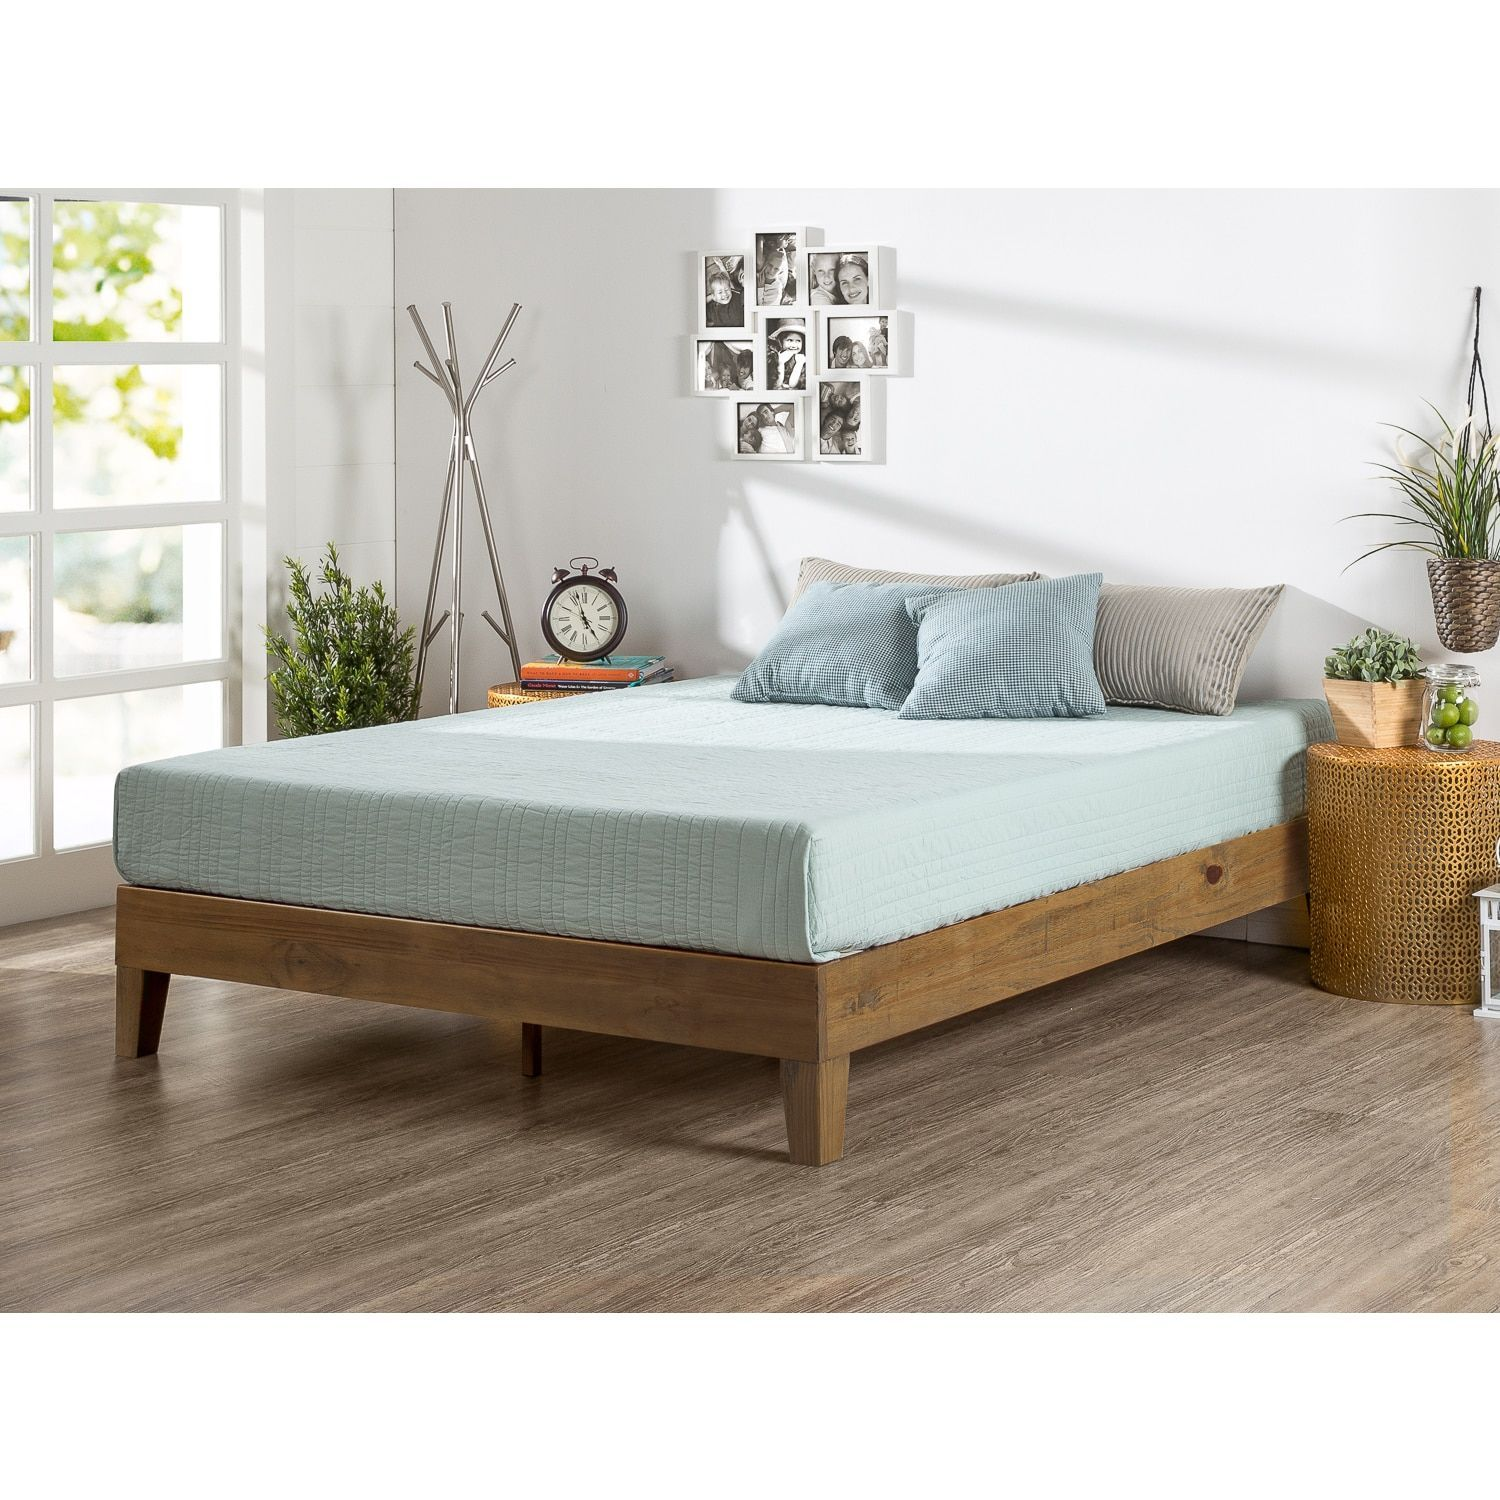 Overstock Com Online Shopping Bedding Furniture Electronics Jewelry Clothing More Solid Wood Platform Bed Wood Platform Bed Platform Bed Frame